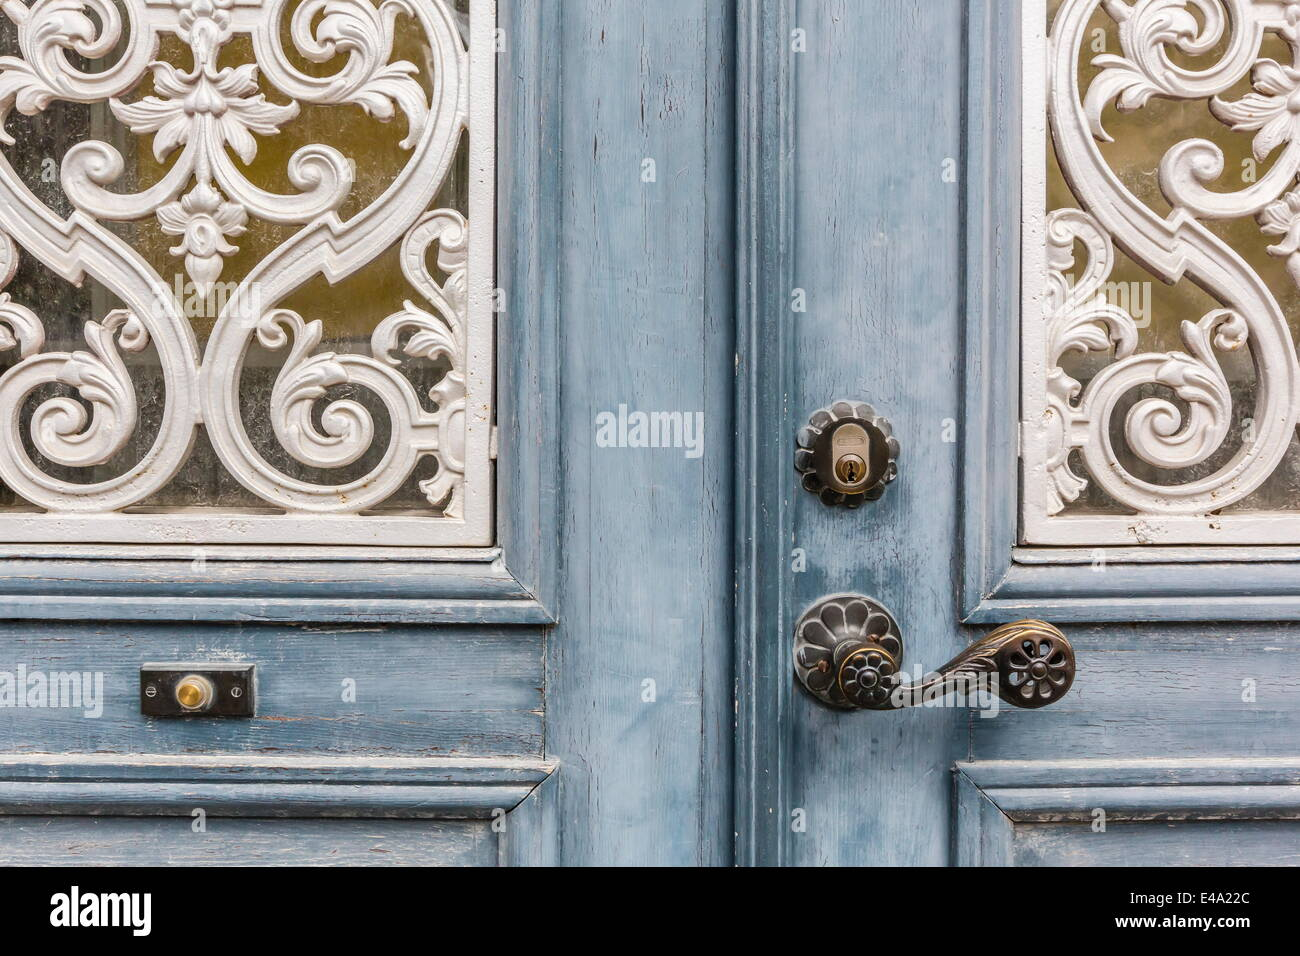 Door detail in the town of Visby, Gotland Island, Sweden, Scandinavia, Europe - Stock Image